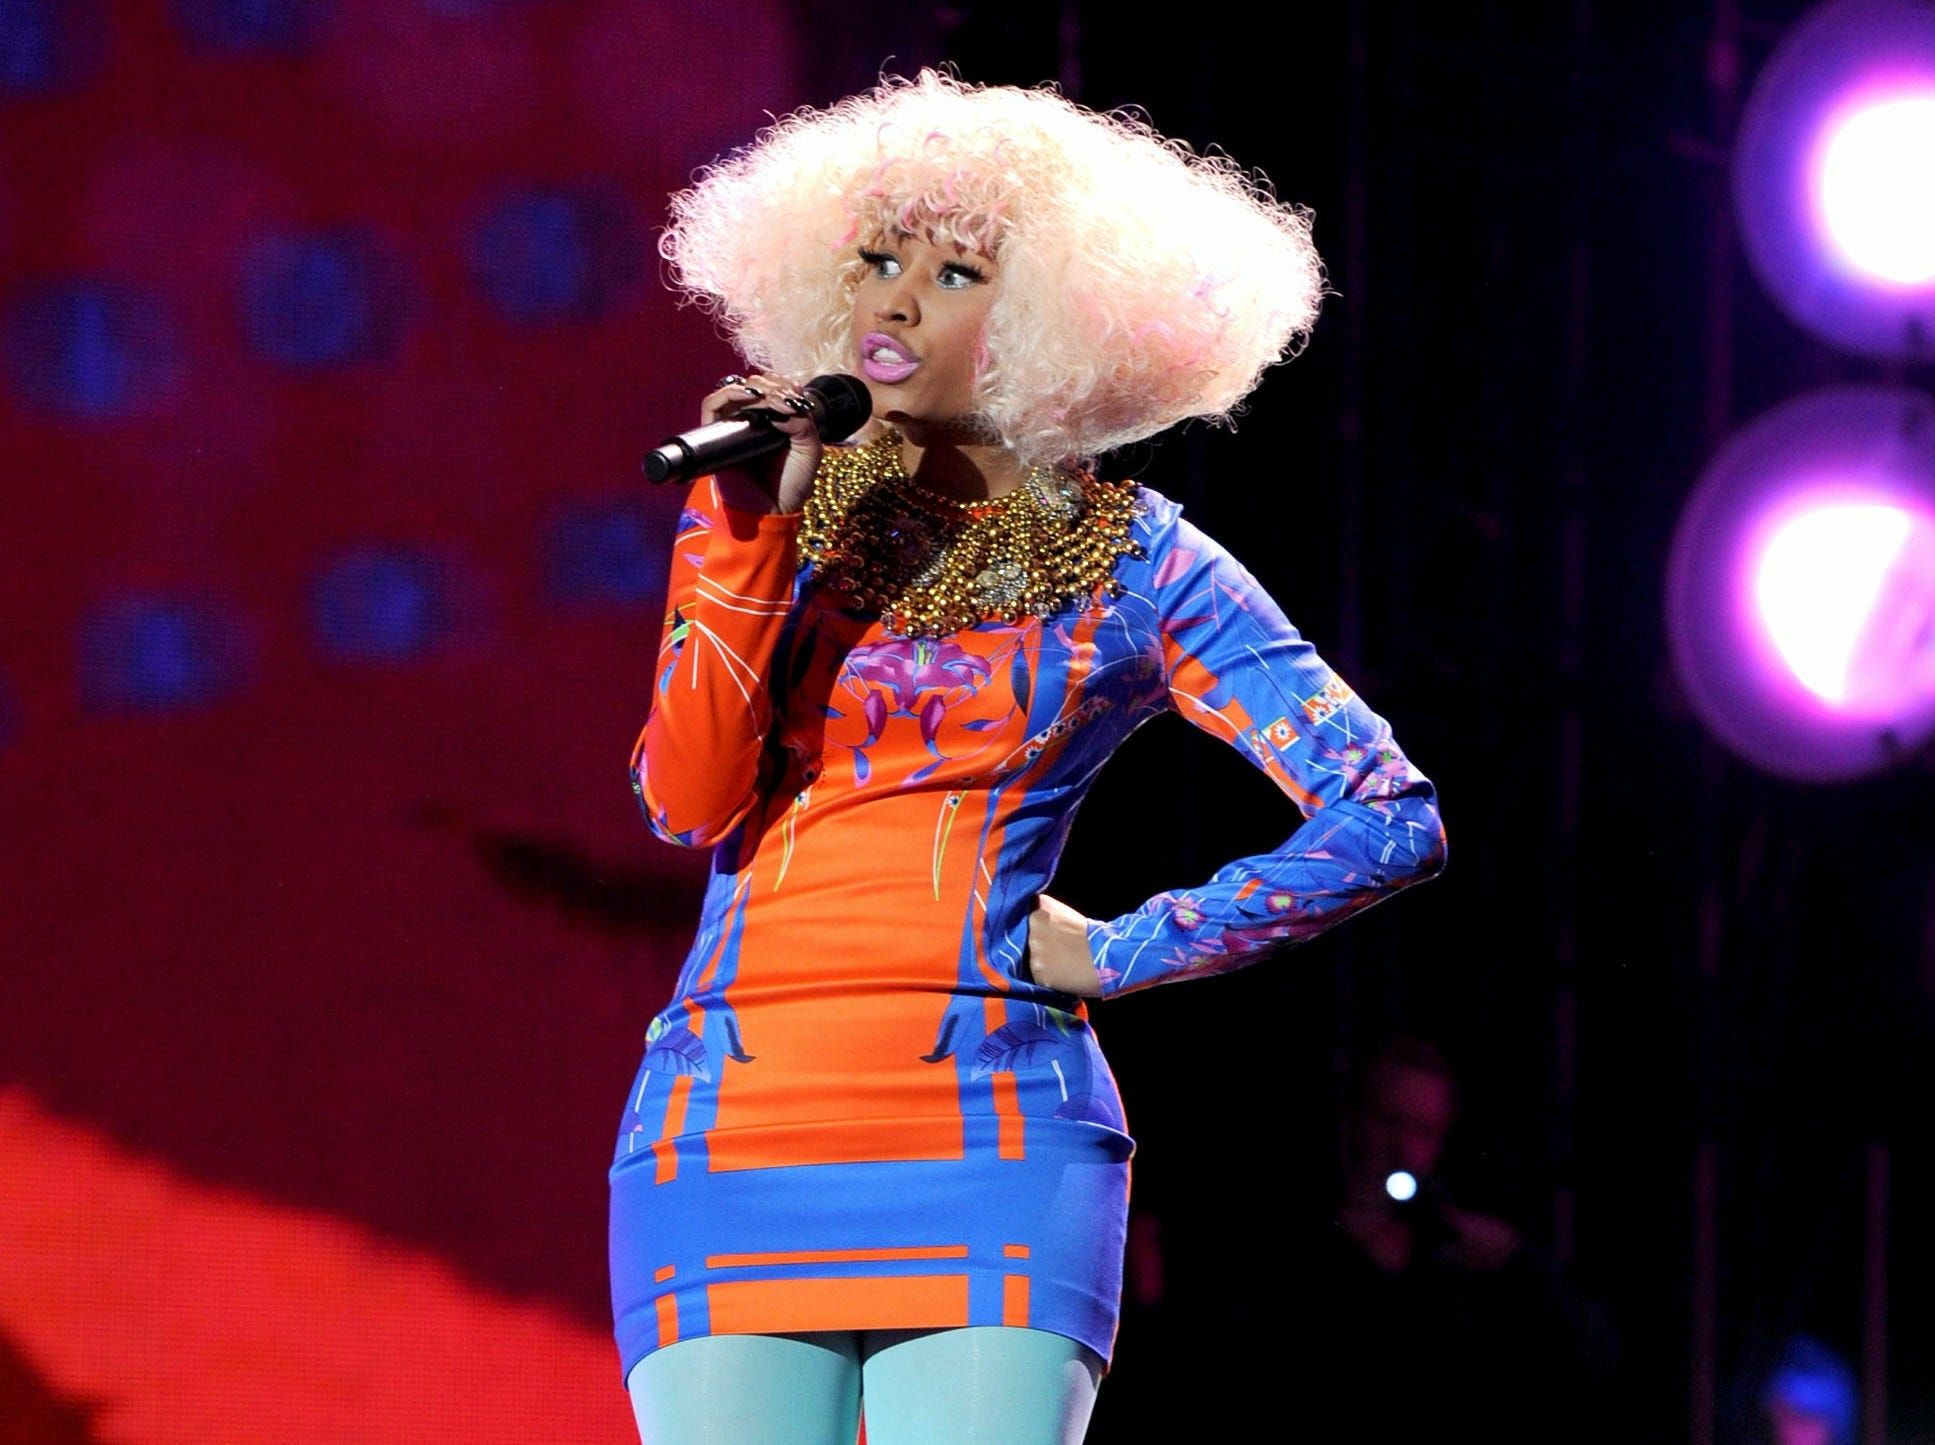 "ORG XMIT: 106786335 MIRAMAR, CA - DECEMBER 03:  Singer Nicki Minaj performs onstage during ""VH1 Divas Salute the Troops"" presented by the USO at the MCAS Miramar on December 3, 2010 in Miramar, California. ""VH1 Divas Salute the Troops"" concert event will be televised on Sunday, December 5 at 9:00 PM ET/PT on VH1.  (Photo by Kevin Winter/Getty Images for VH1) ORIG FILE ID: 106786335PB038_The_USO_Pres"